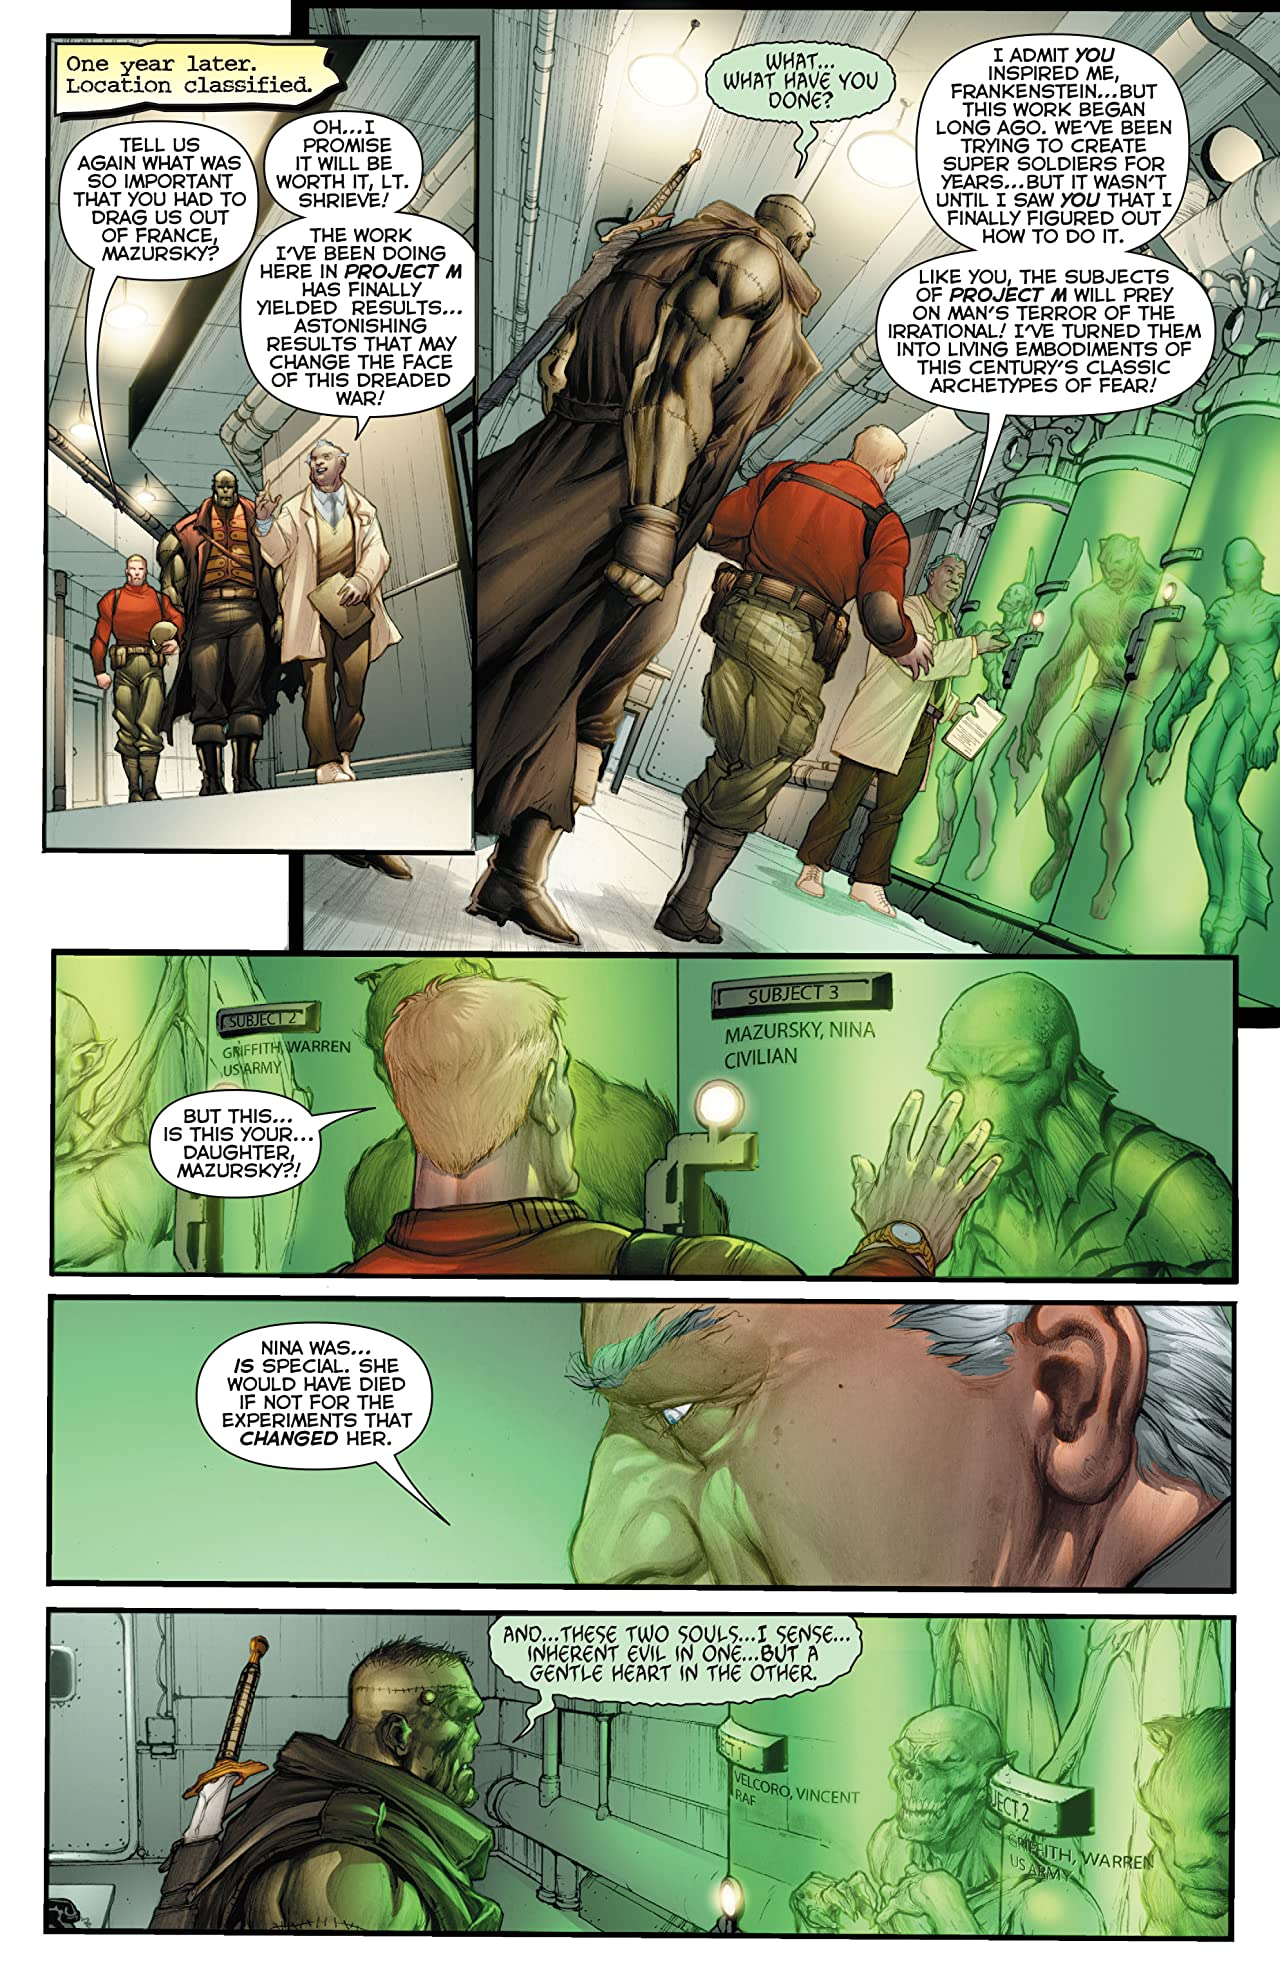 Flashpoint: Frankenstein and the Creatures of the Unknown #1 (of 3)